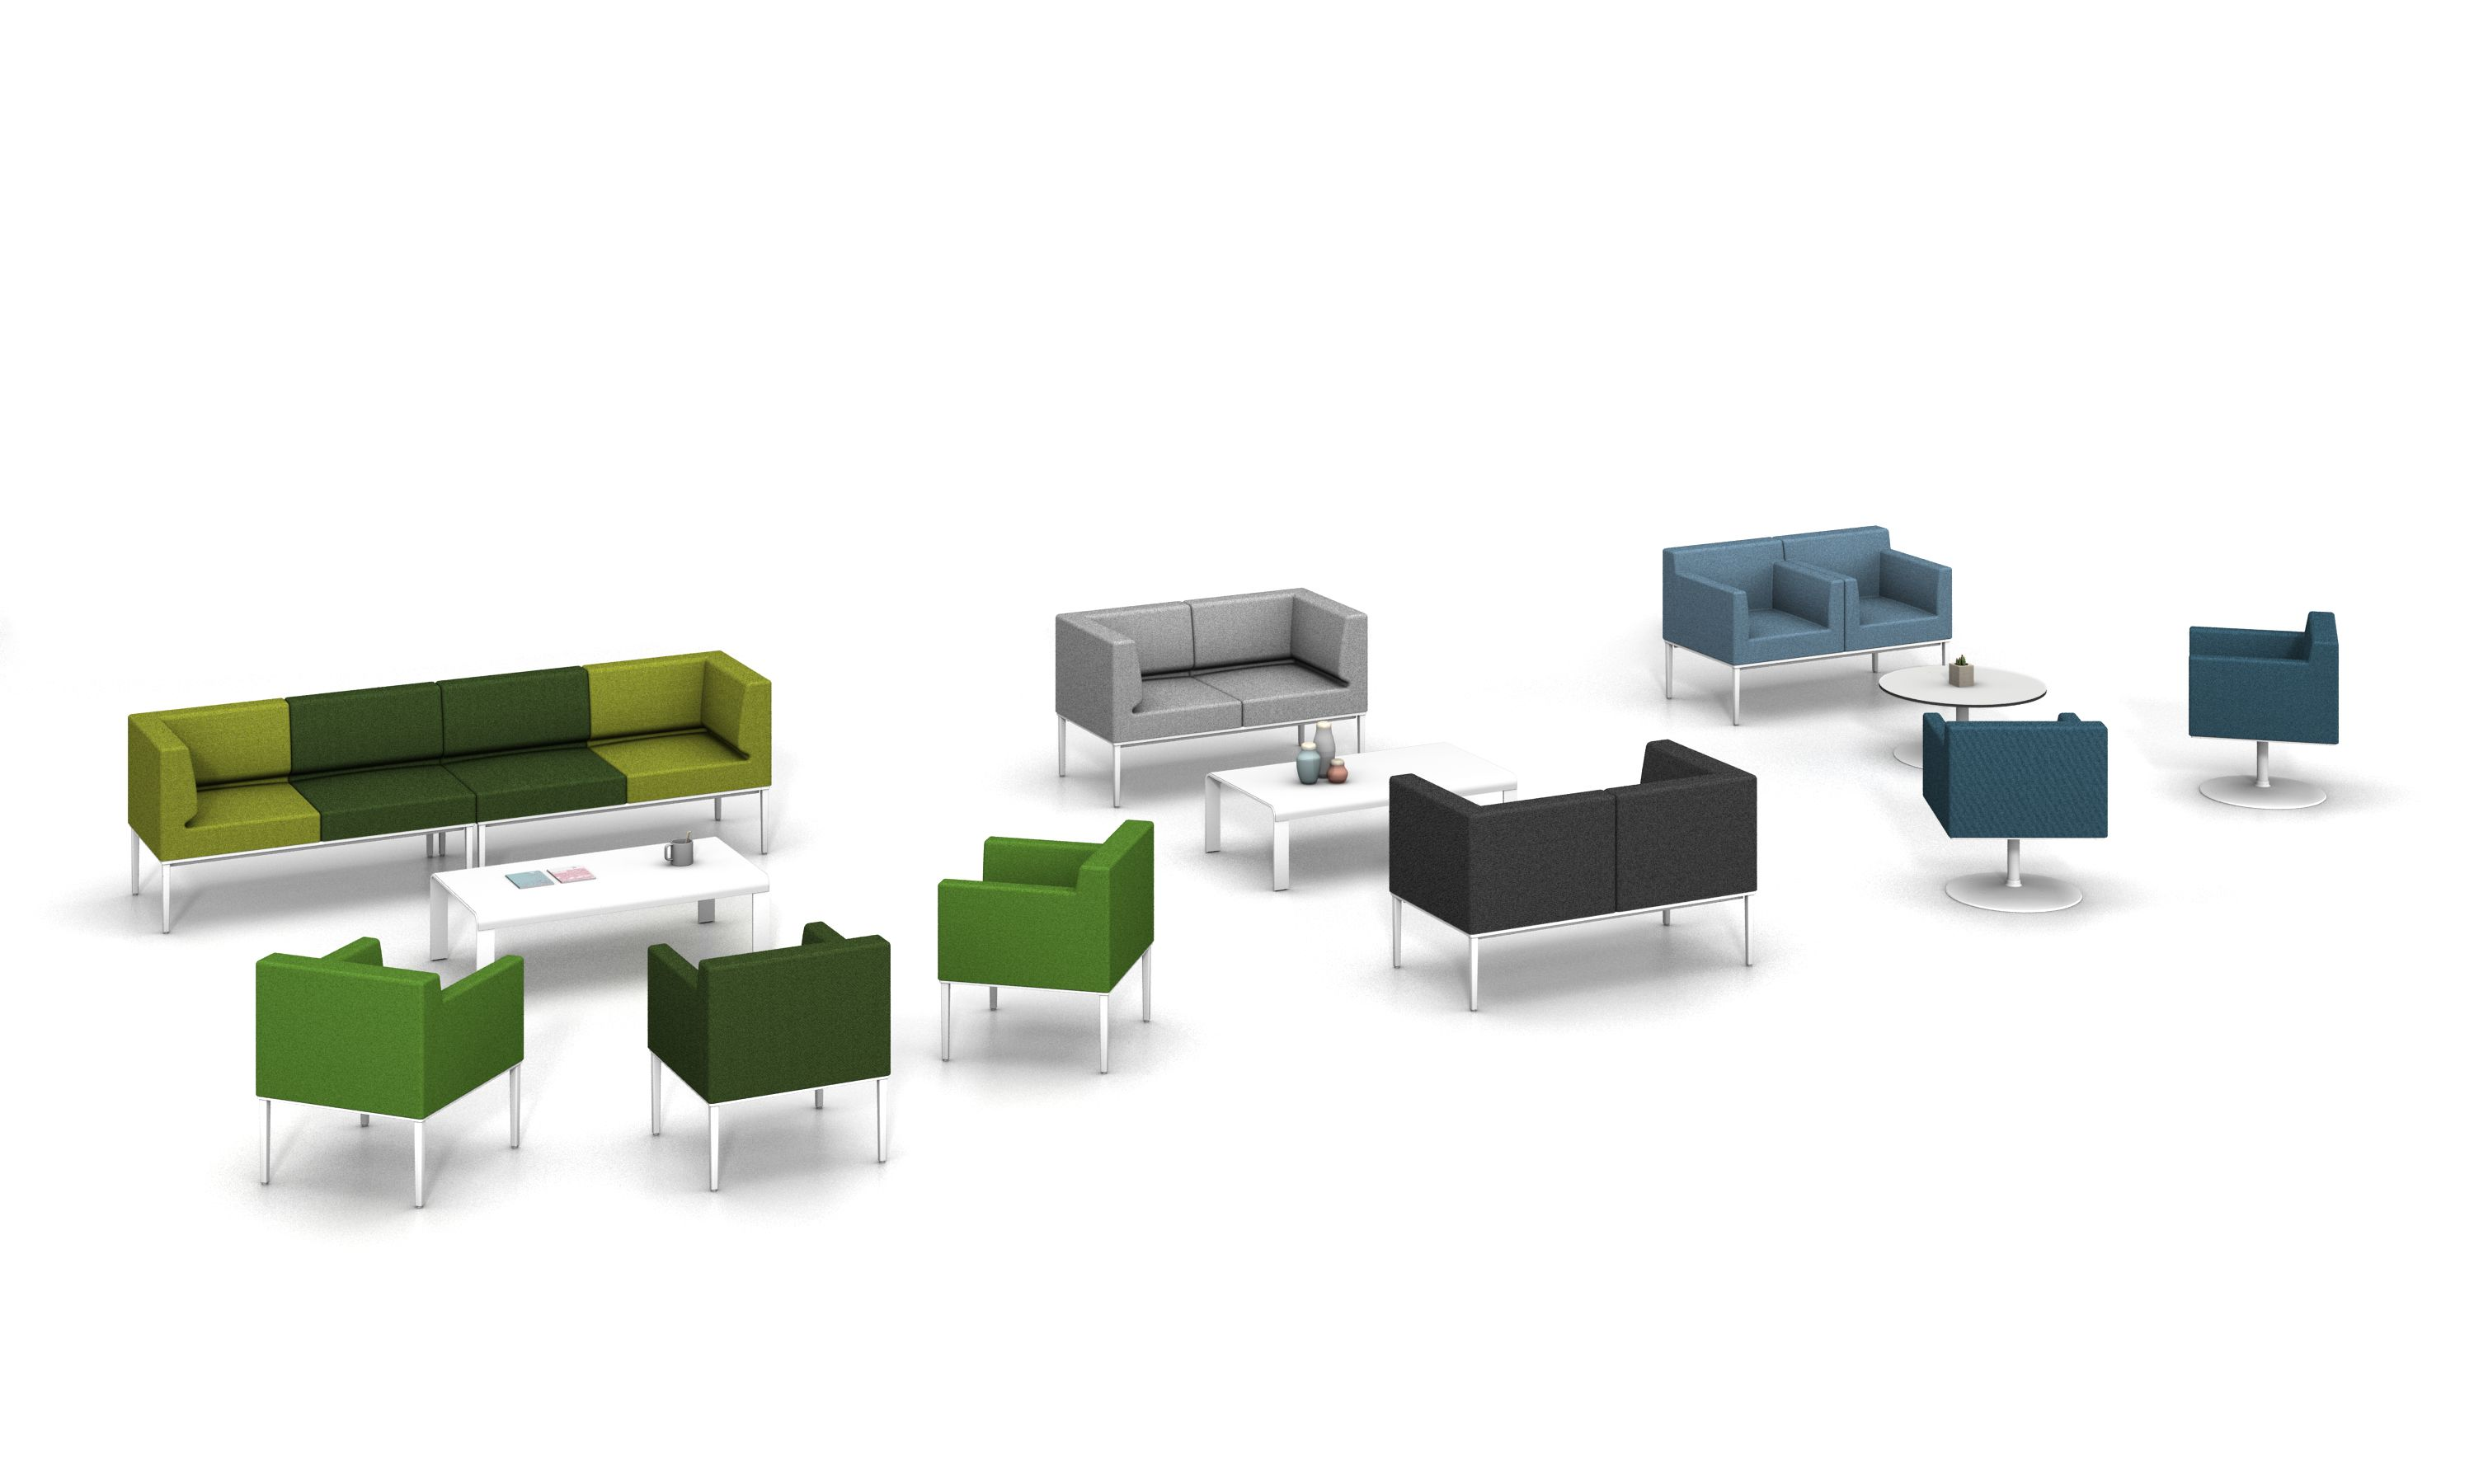 actiu office furniture. The Most Outstanding Brands Of Furniture From Spain Exhibit Their Latest Office And Contract Collections At Orgatec Cologne Read Actiu O